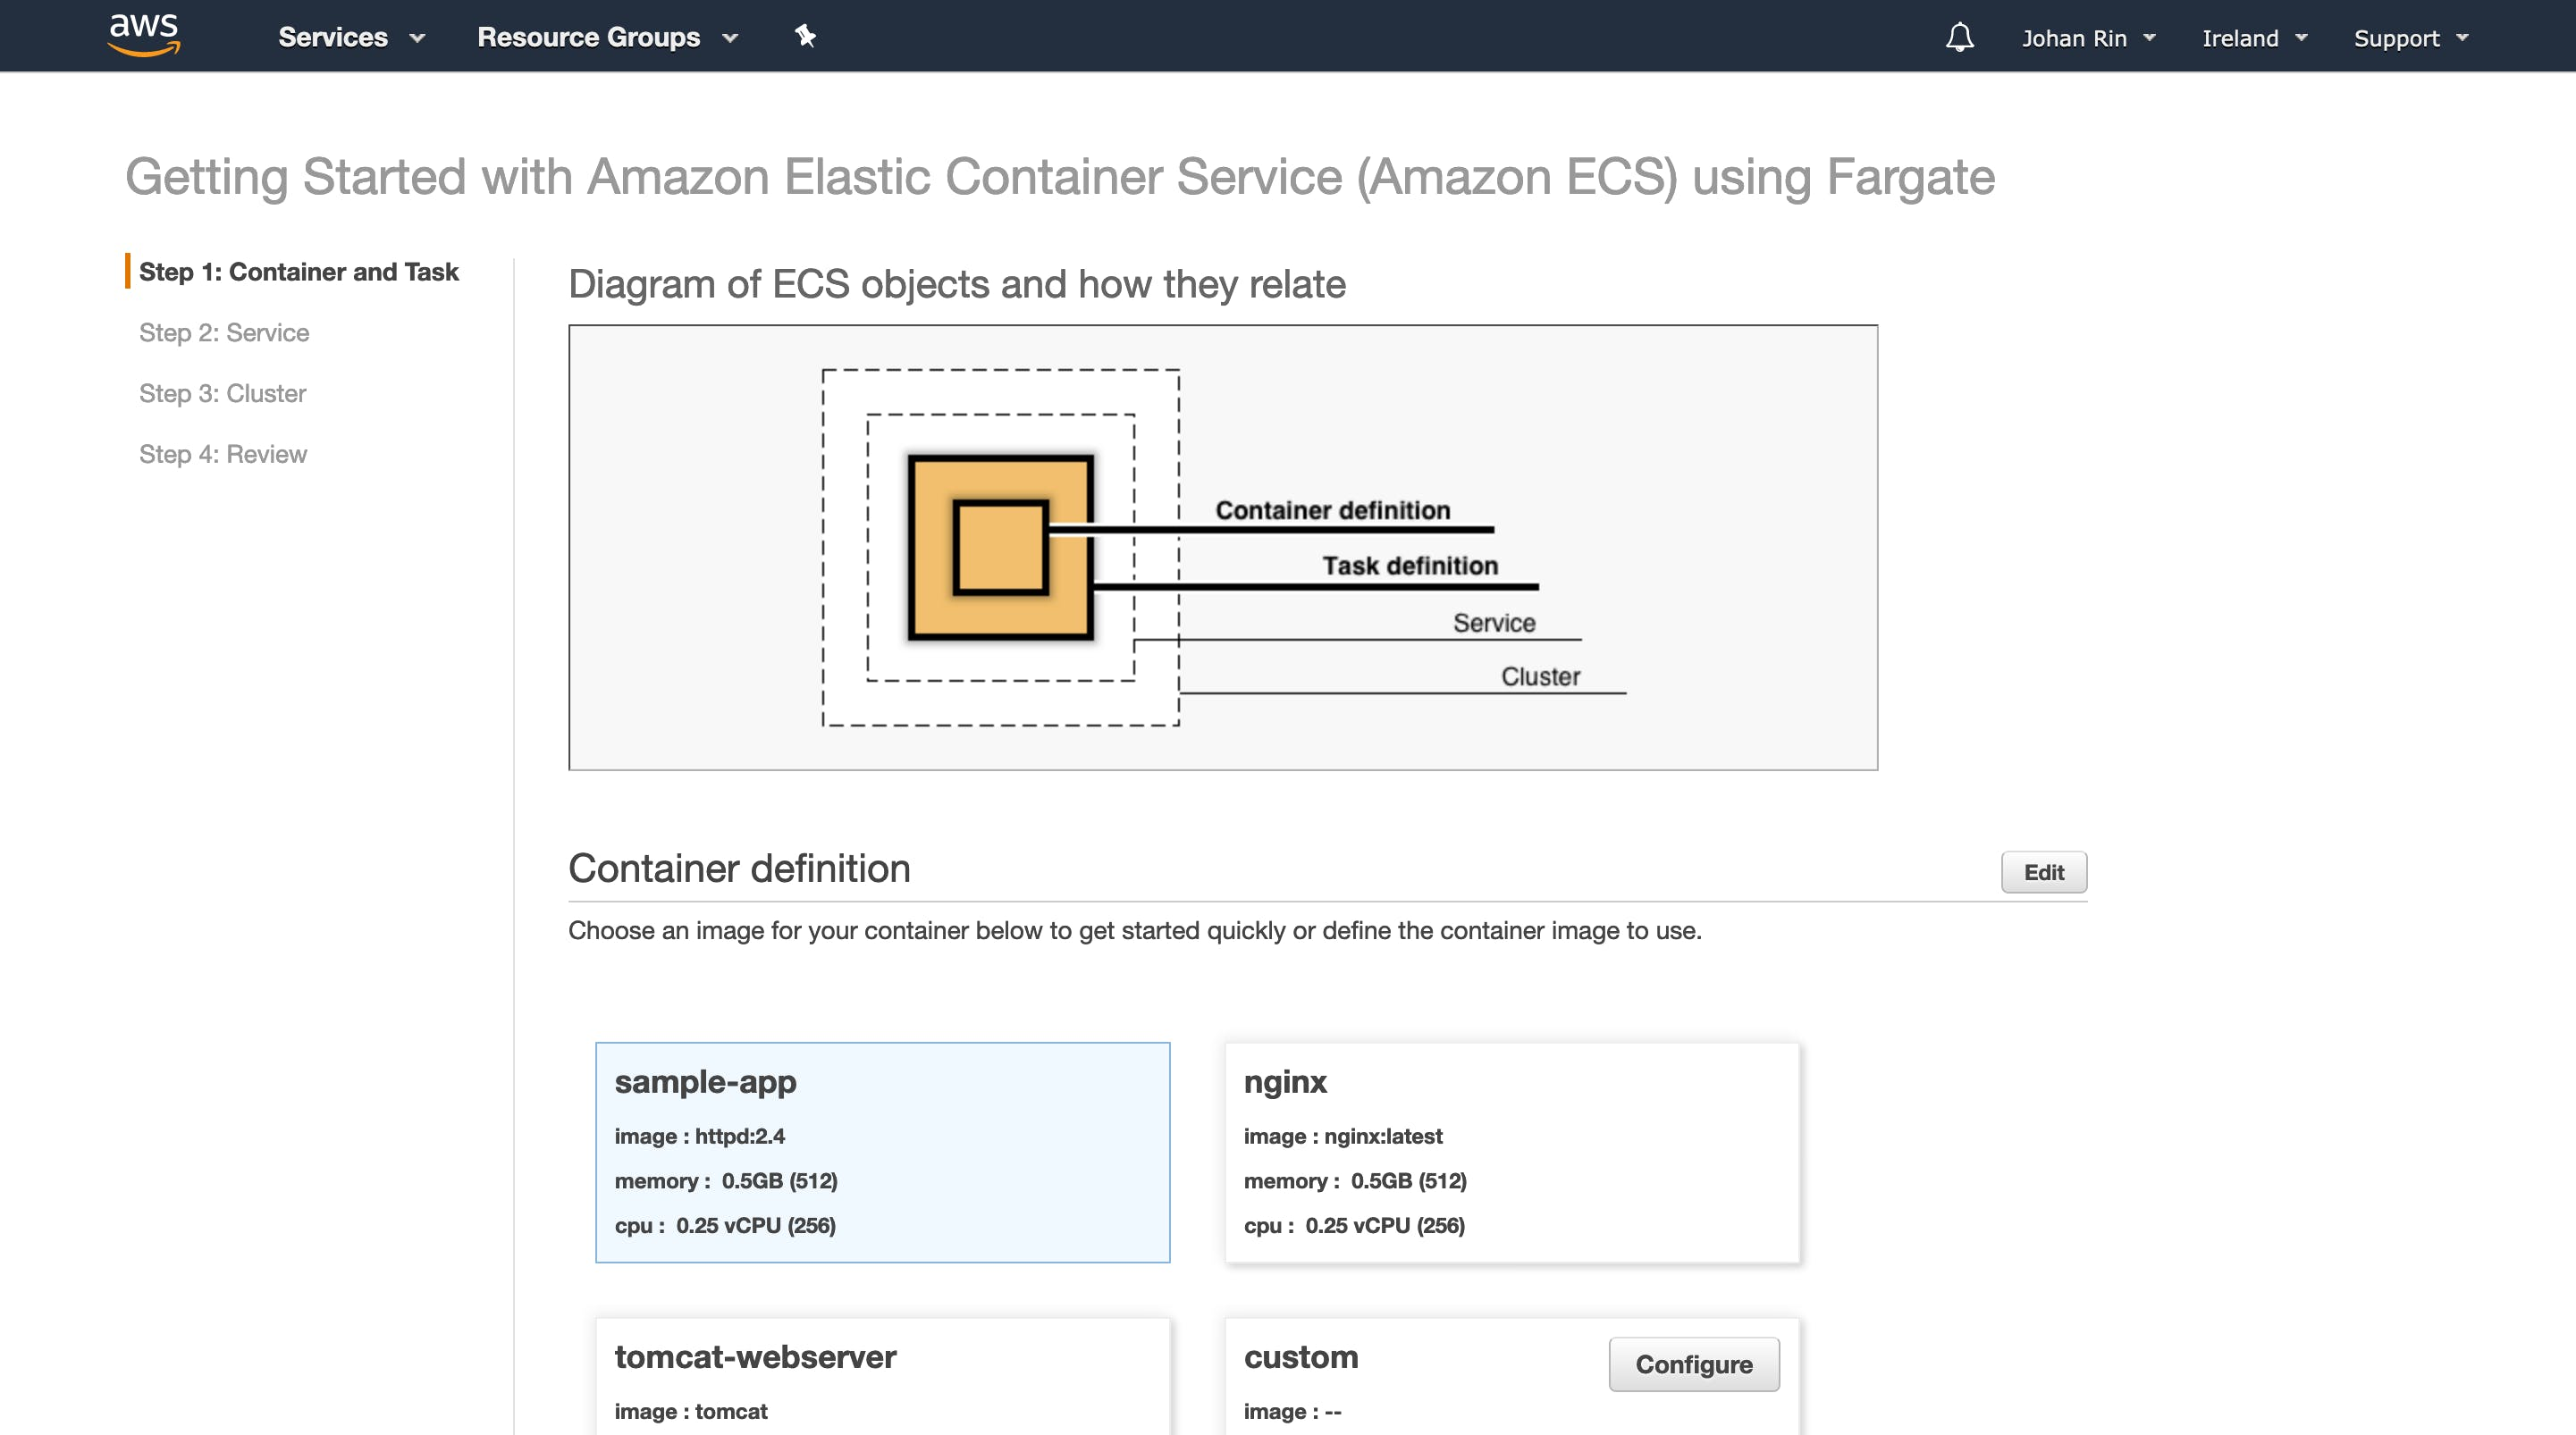 Open the Amazon ECS console first run wizard